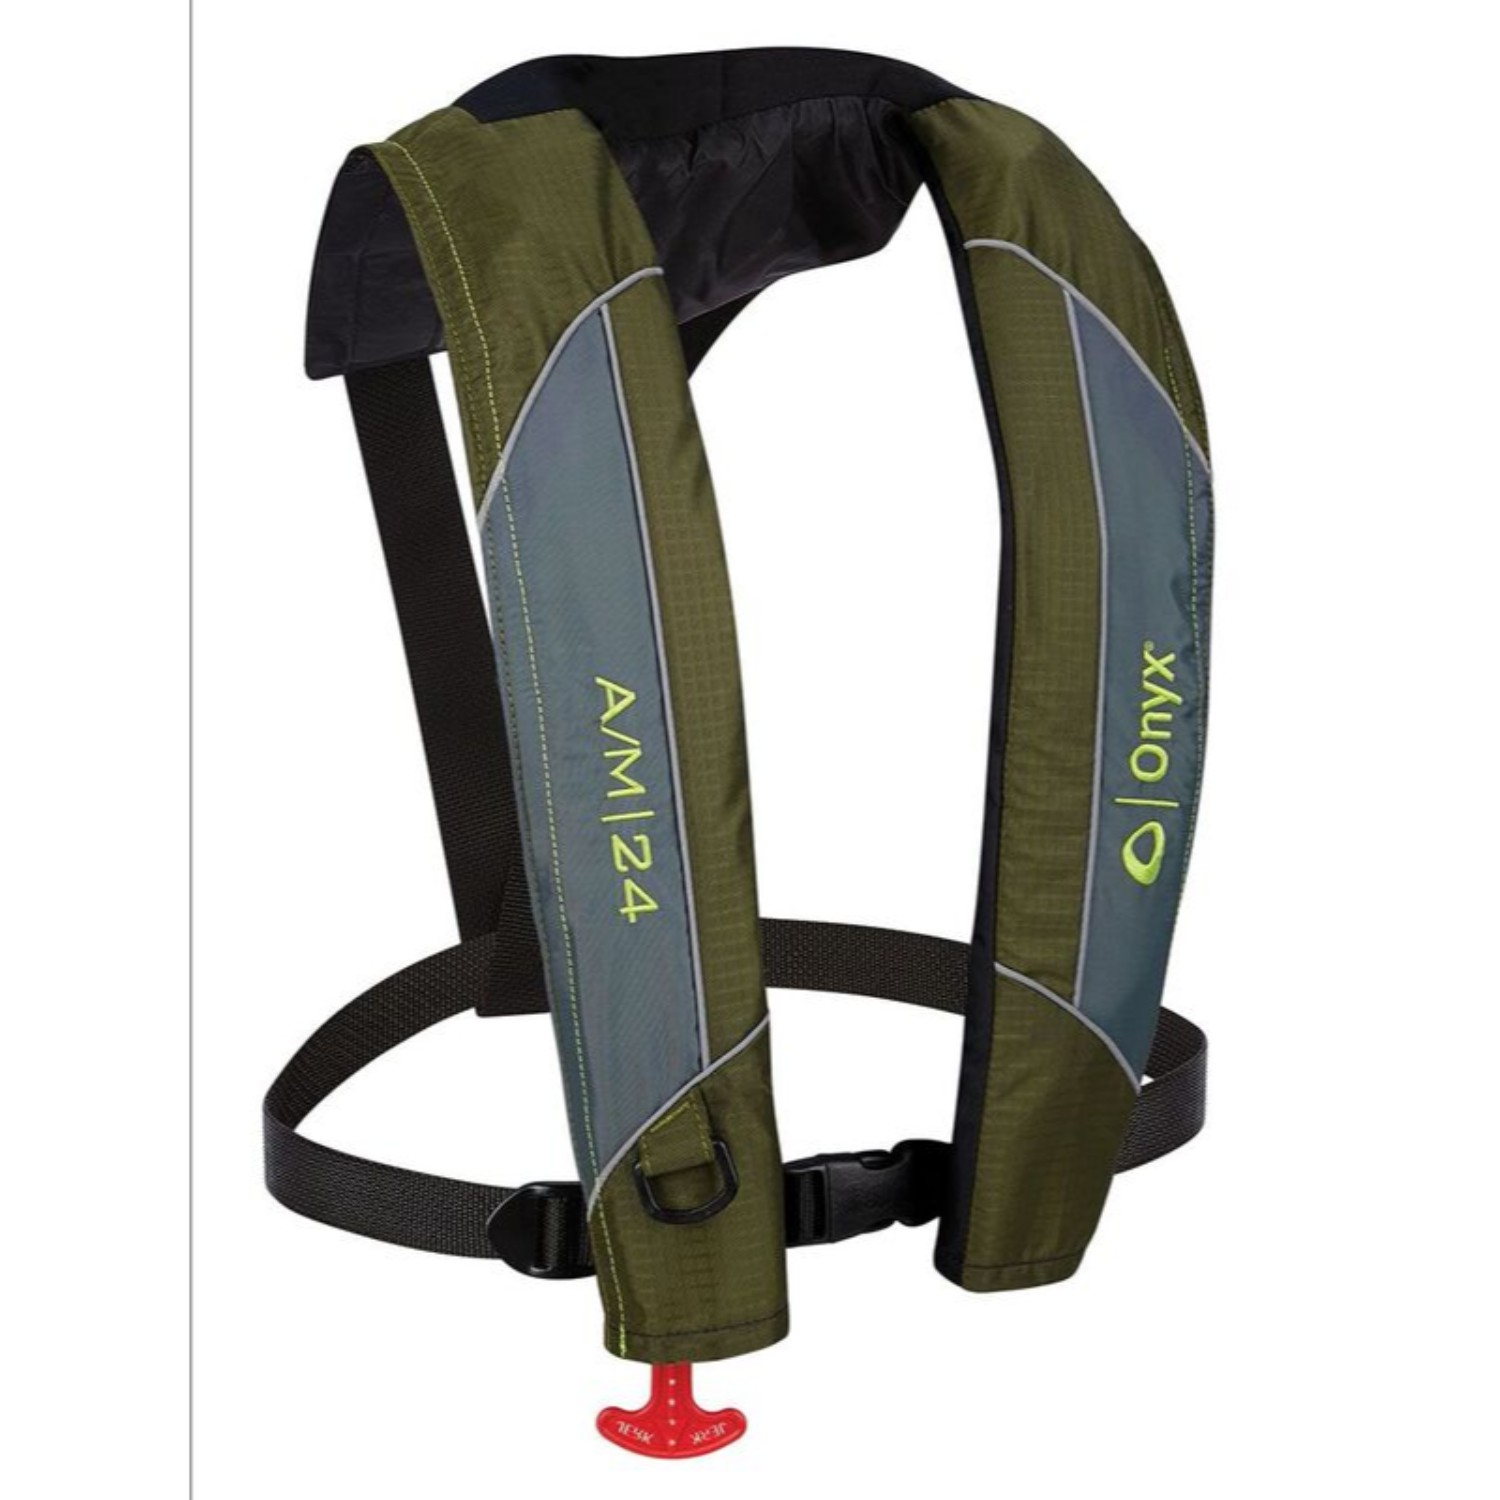 Onyx A/M-24 Auto/Manual Inflatable Adult Life Jacket